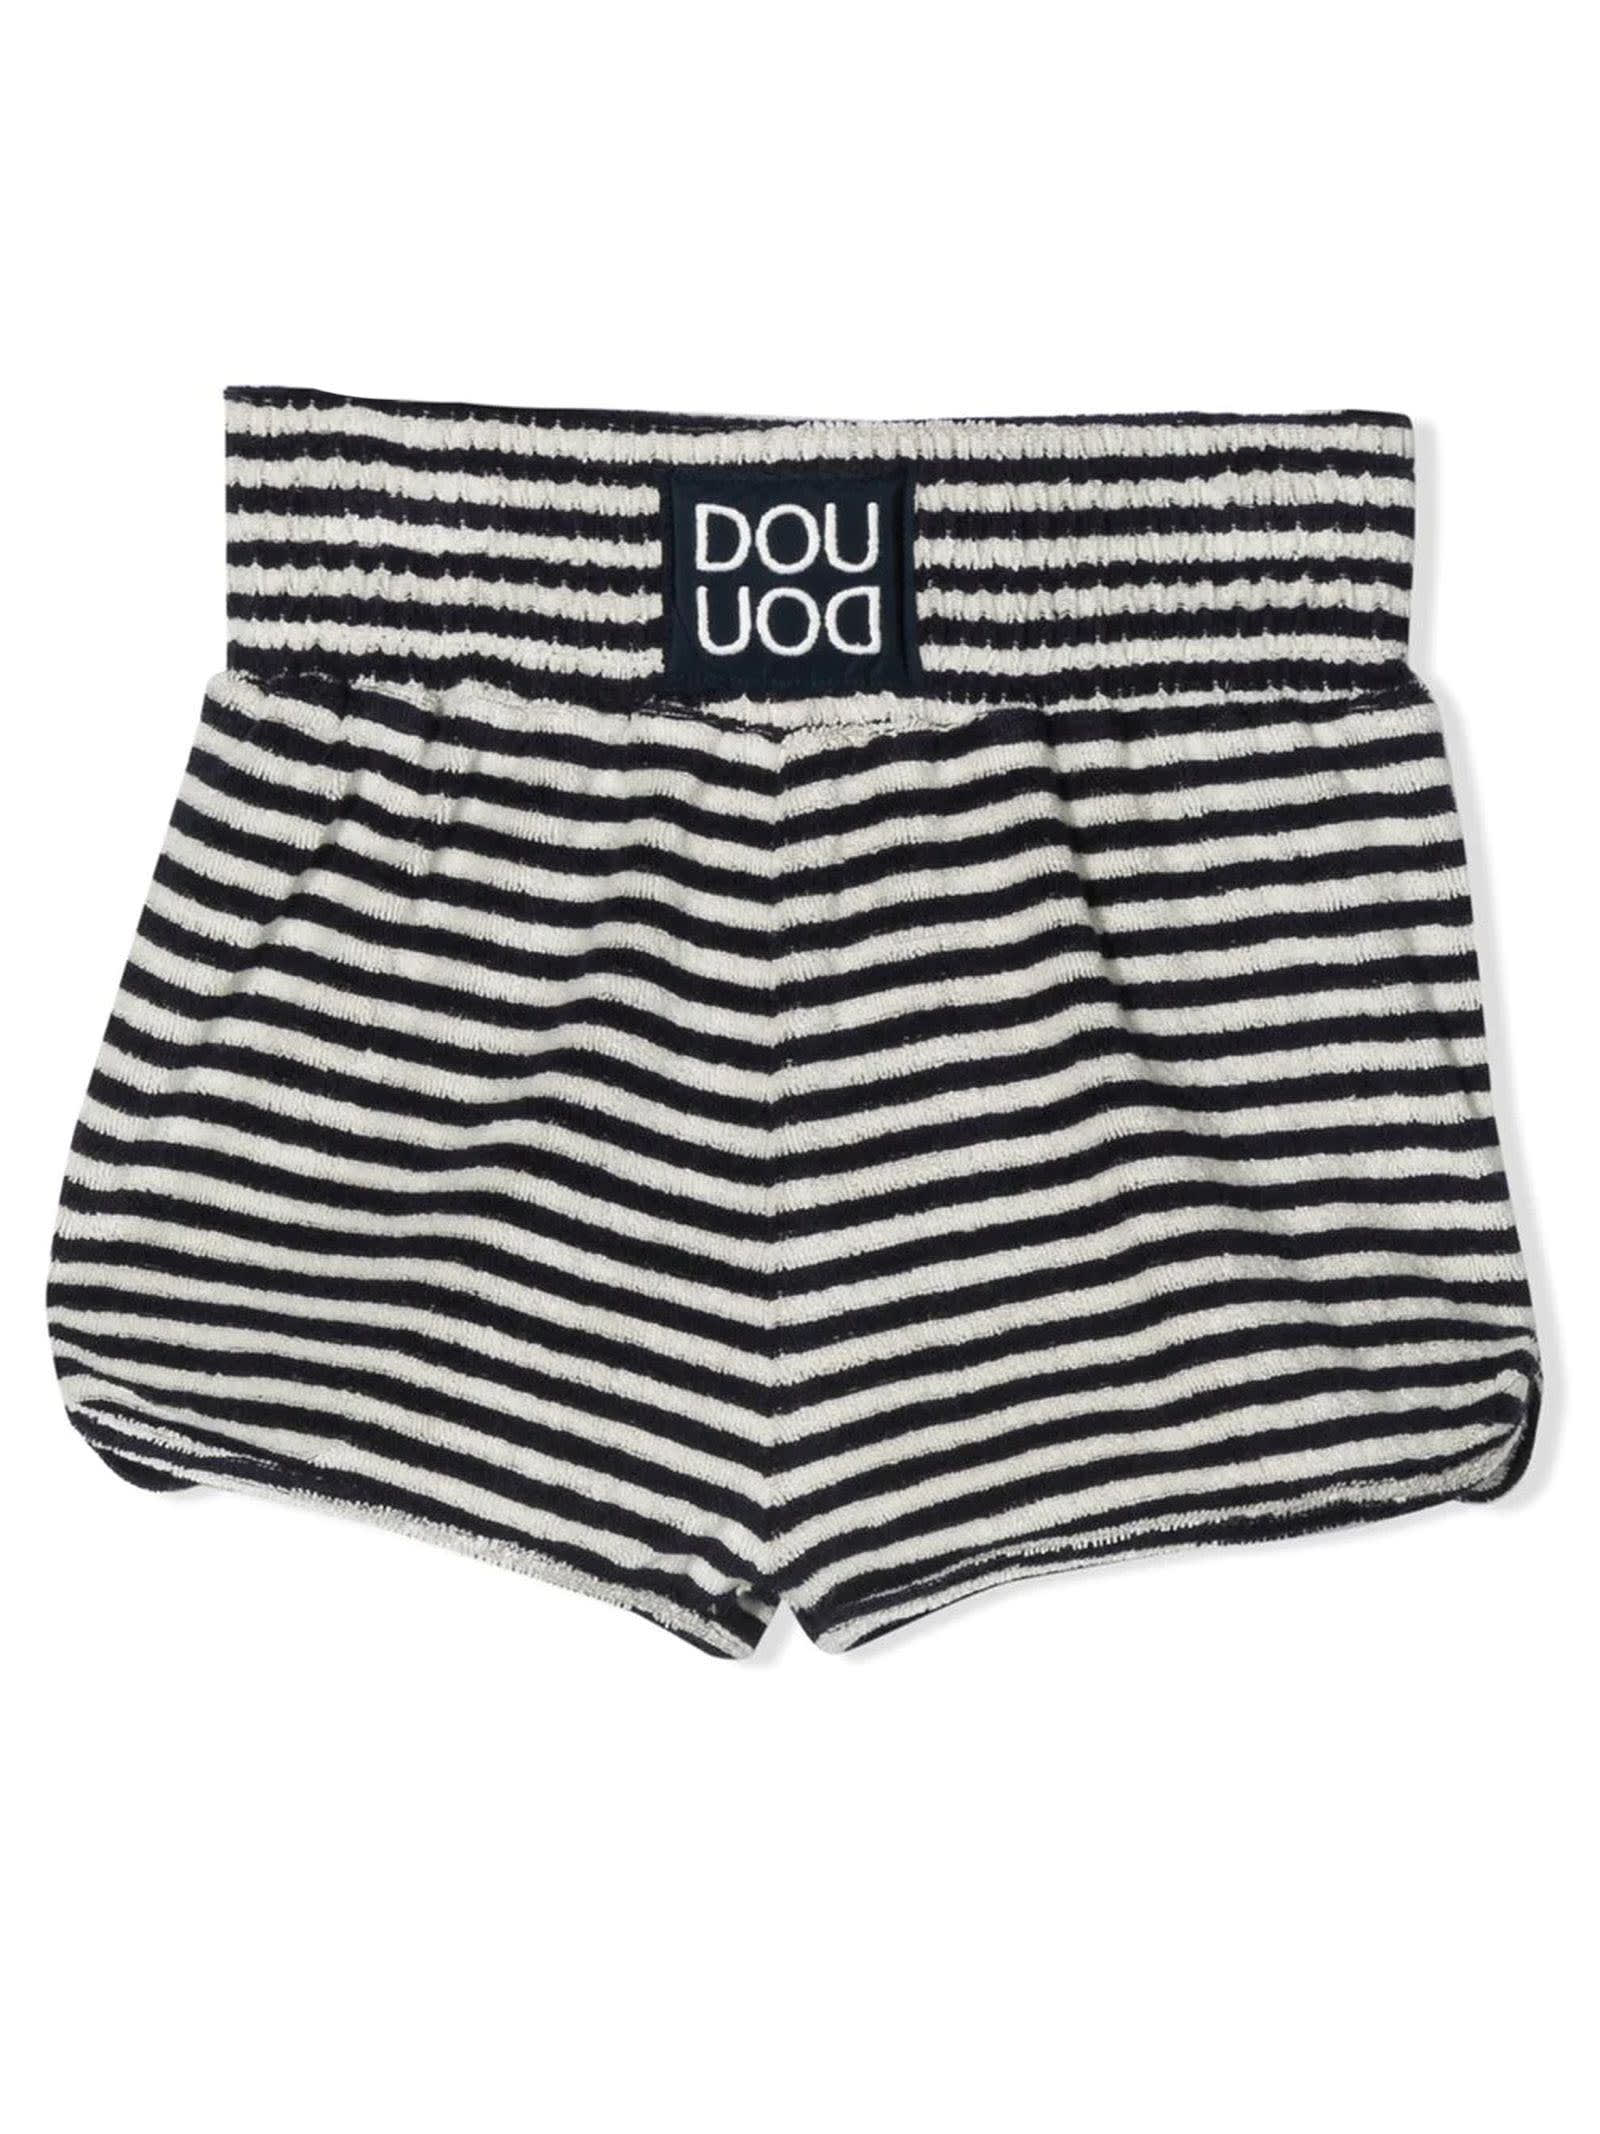 Black And White Cotton Blend Shorts